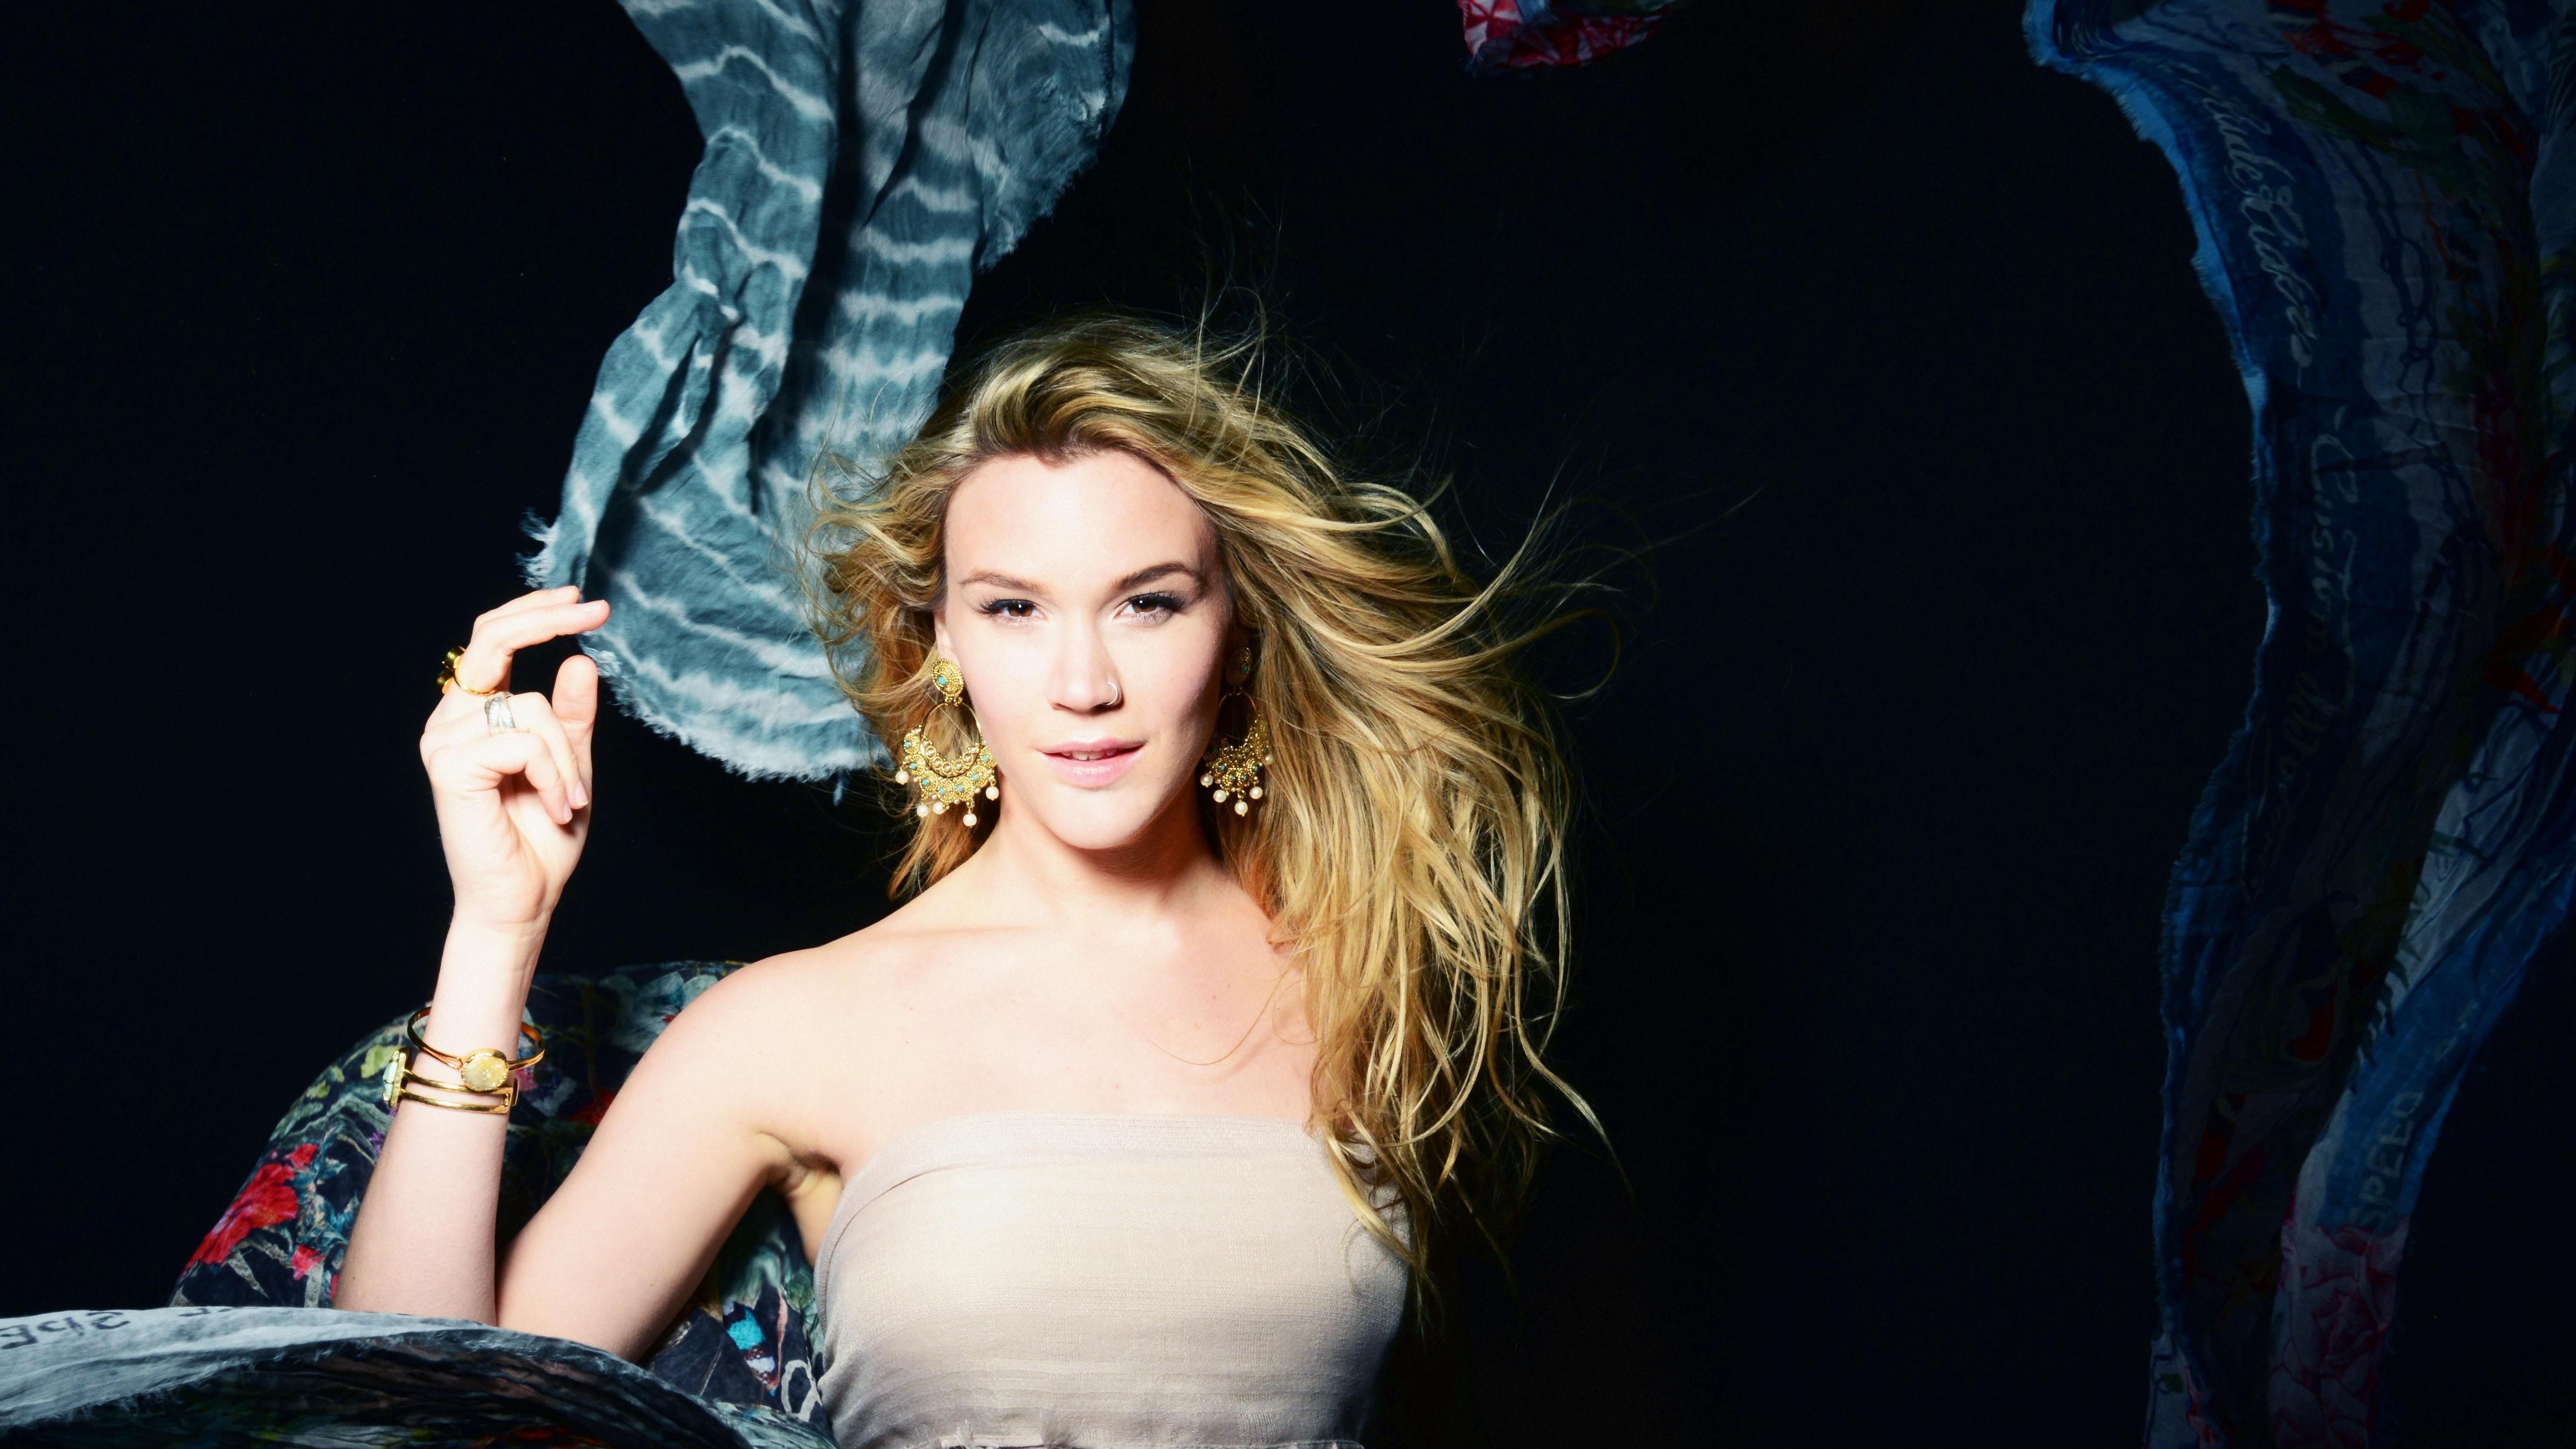 Joss stone no one likes her she dont care naked (94 photos), Selfie Celebrites pic